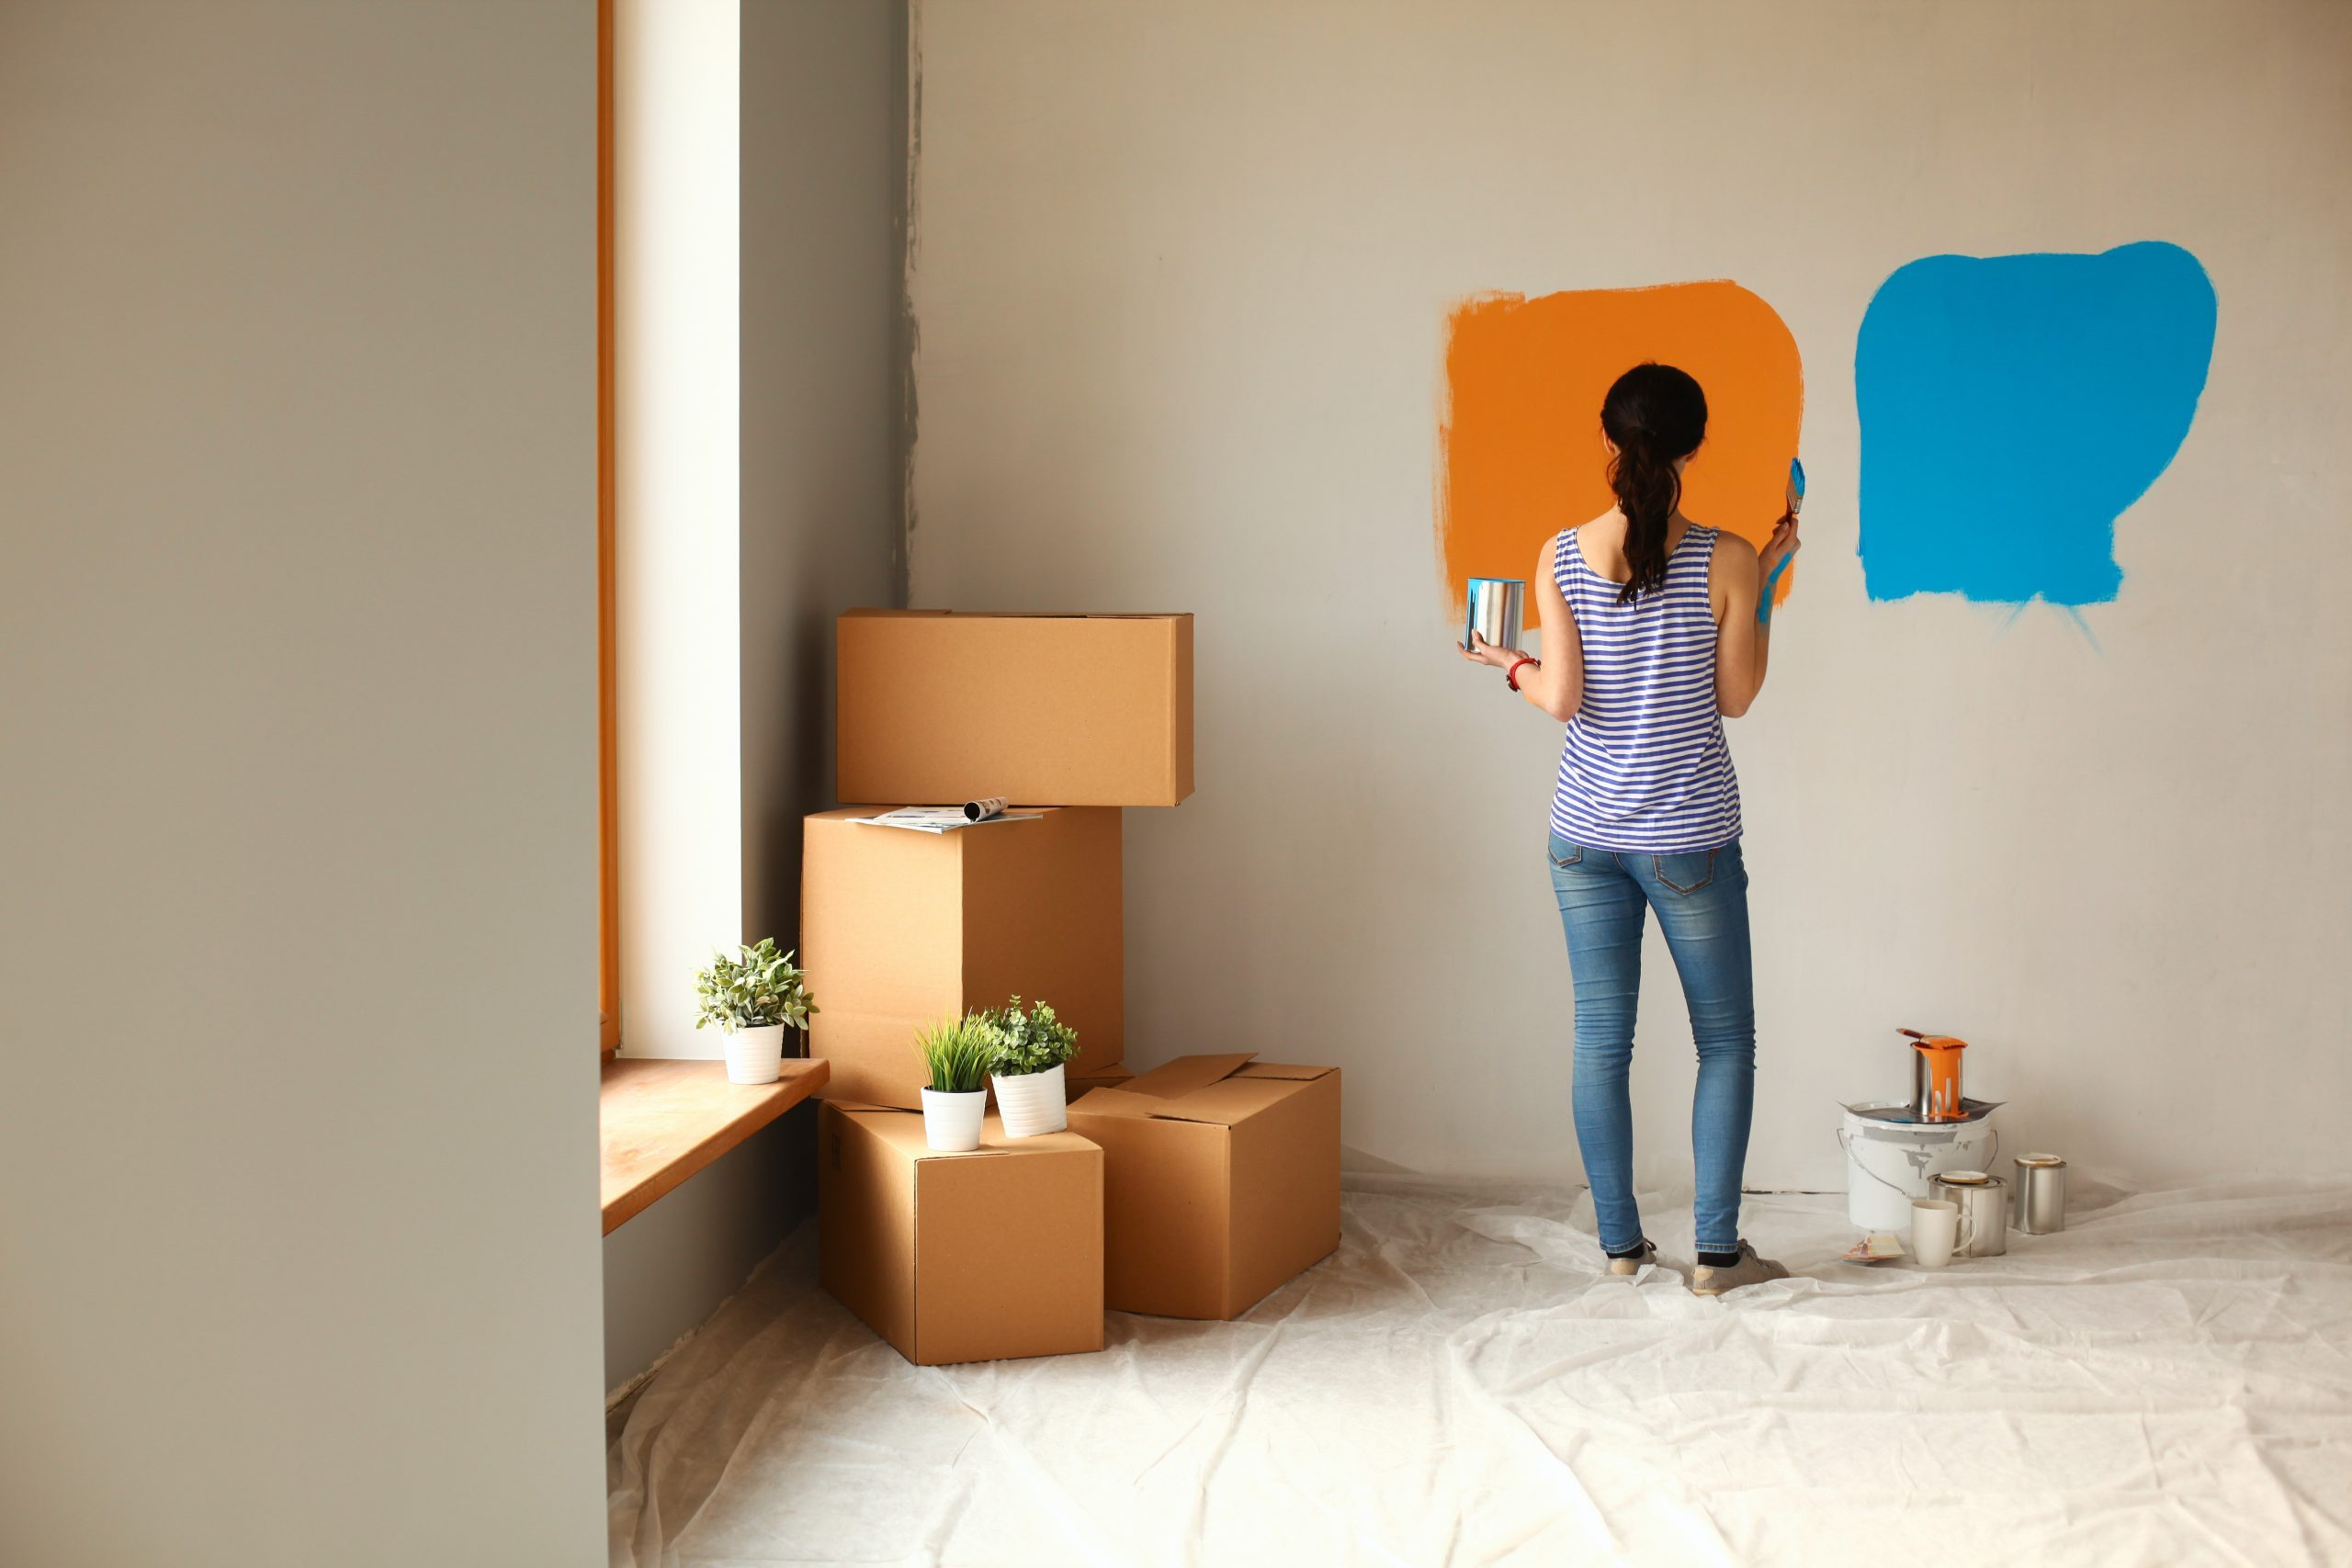 House Painting Mistakes Almost Everyone Makes And How To Avoid Them